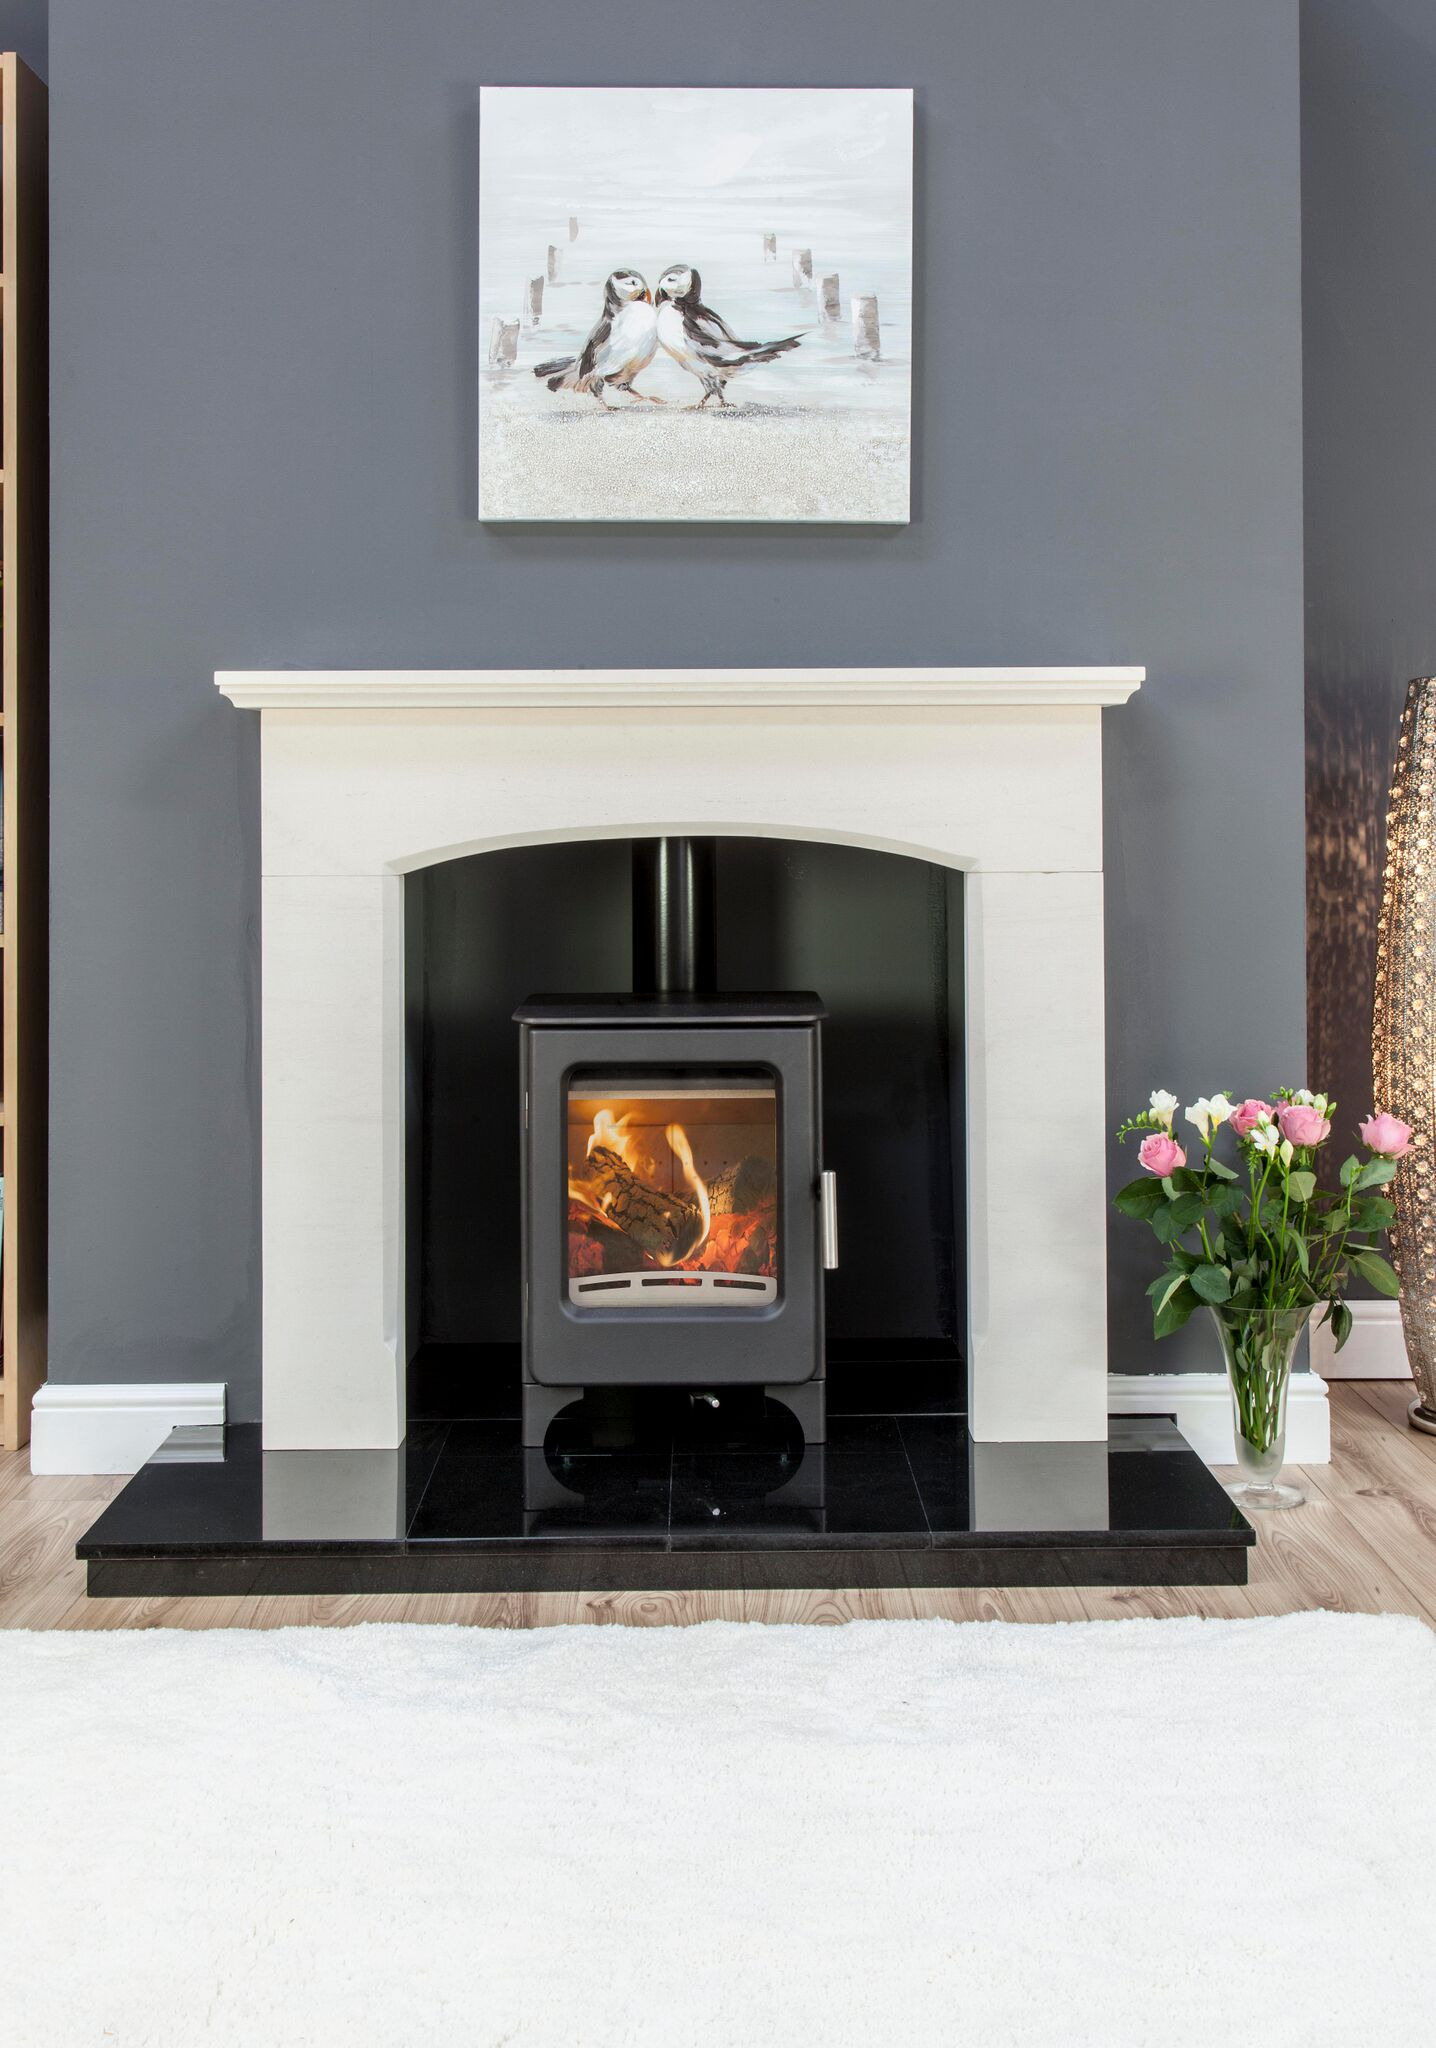 freestanding, granite hearth, slate hearth, woodburning, multifuel, Bangor, Newtownards, Belfast, Holywood, Conlig, Stove yard, Fireplaces, flue pipe, hearths, room heater, wilsons, Portaferry, Kircubbin, Greyabbey, riven slate, wooden beans, fireplace beams, fire chambers, open fires, logs, coal, grates, stove glass, grate bars, ards fireplaces, Jubilee Road, Helensbay, Crawfordsburn, flexi flue, chimney cowls, down draught cowls, gas, natural gas, reflex 75T, log effect fire, Ashcott, Gazco, stovax, medip, arada, varde, Henley, hunter, yeoman